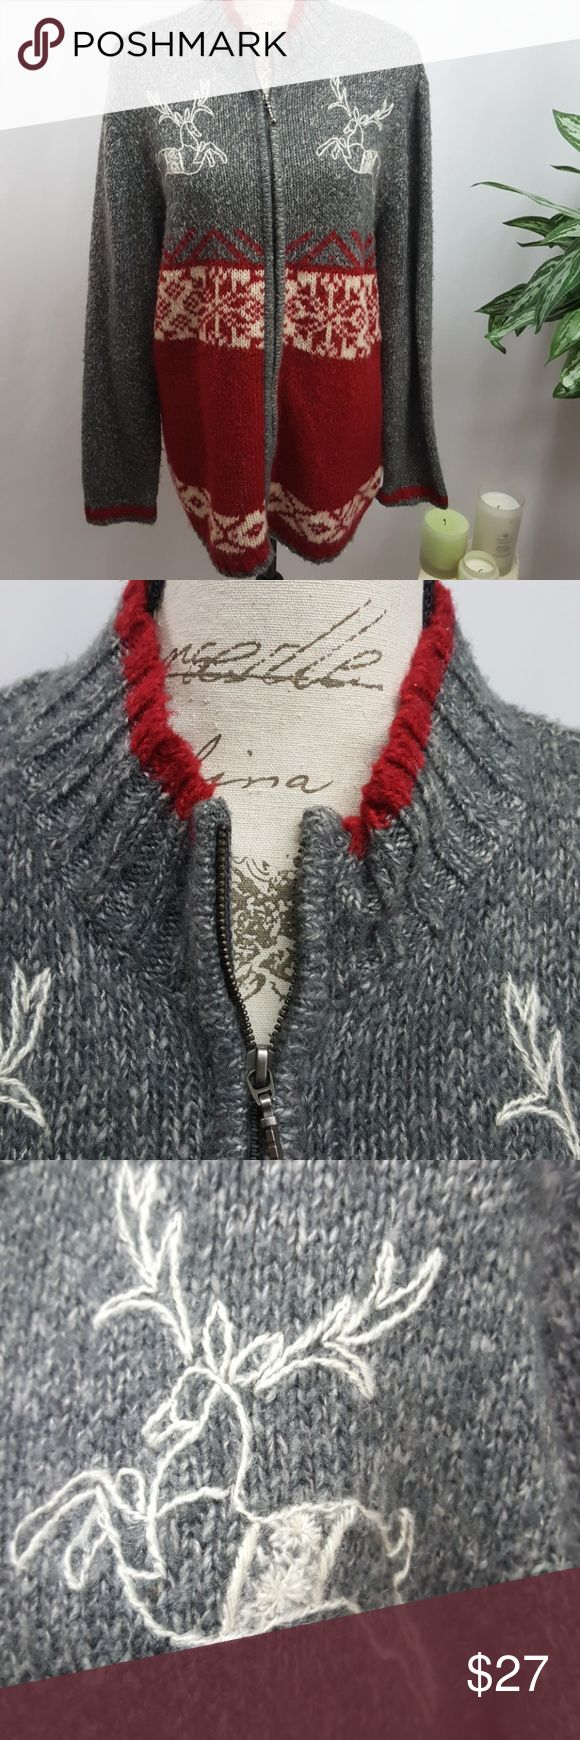 Venezia Plus Size Christmas Sweater 18/20 In excellent used condition.  Christmas Sweater with embroidered reindeer. Zip front closure. Soft and cozy! By Venezia  Size 18/20. Venezia Sweaters